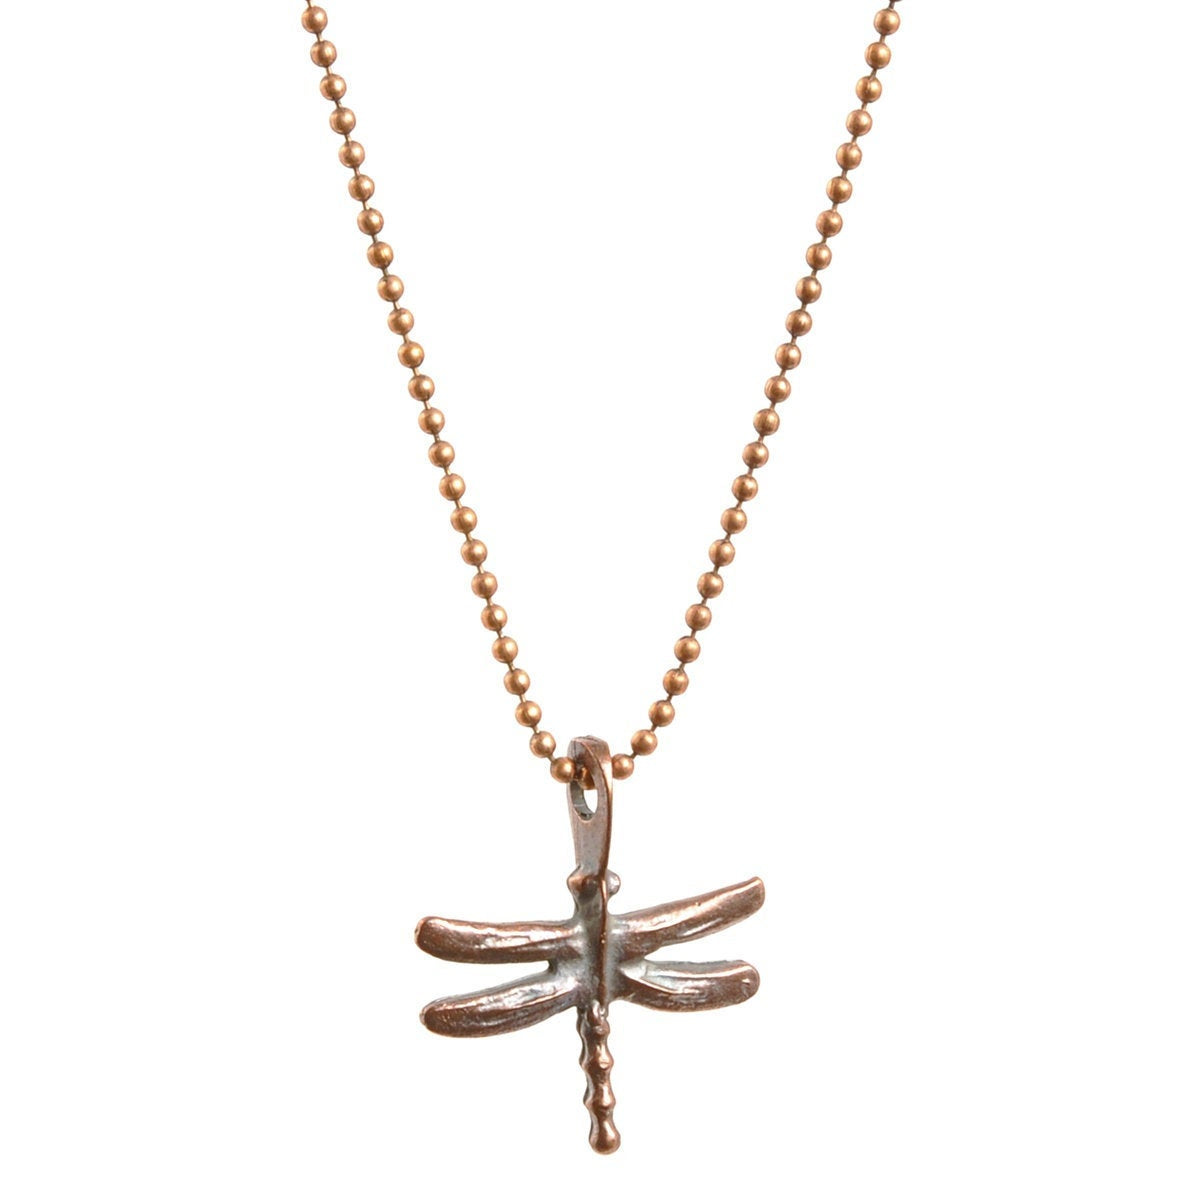 Simple-Antique Copper Dragonfly Ball Chain Necklace